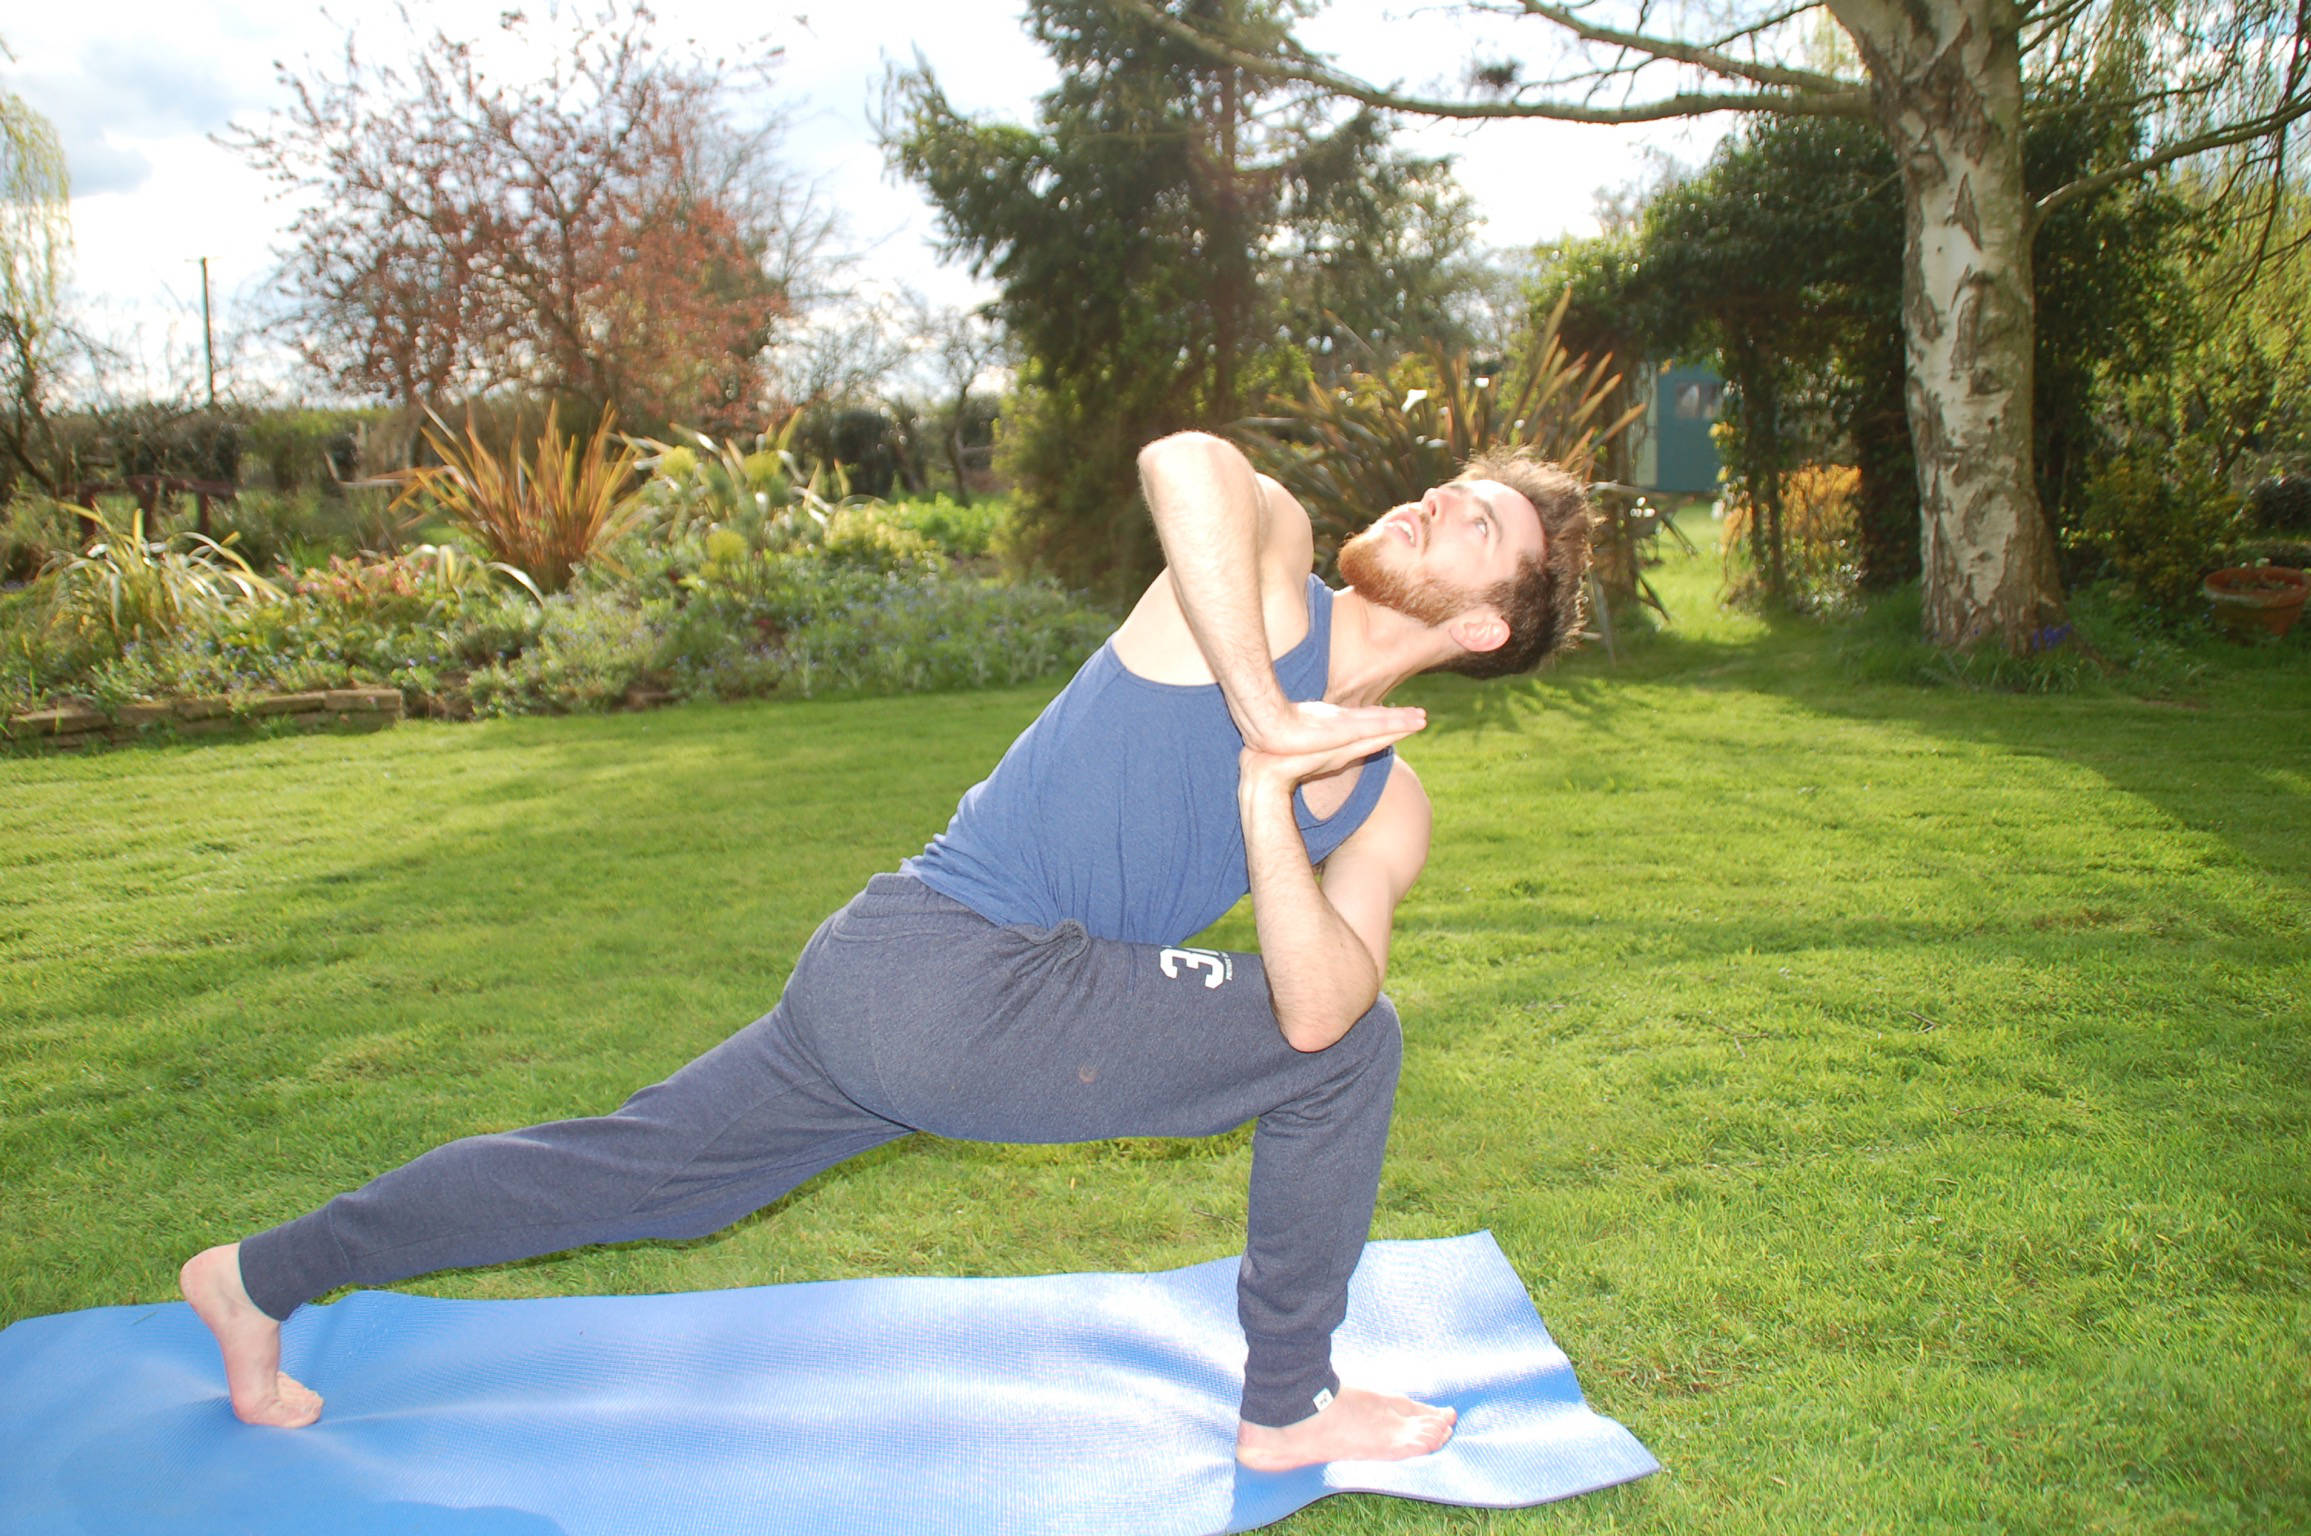 Man practicing yoga in a garden